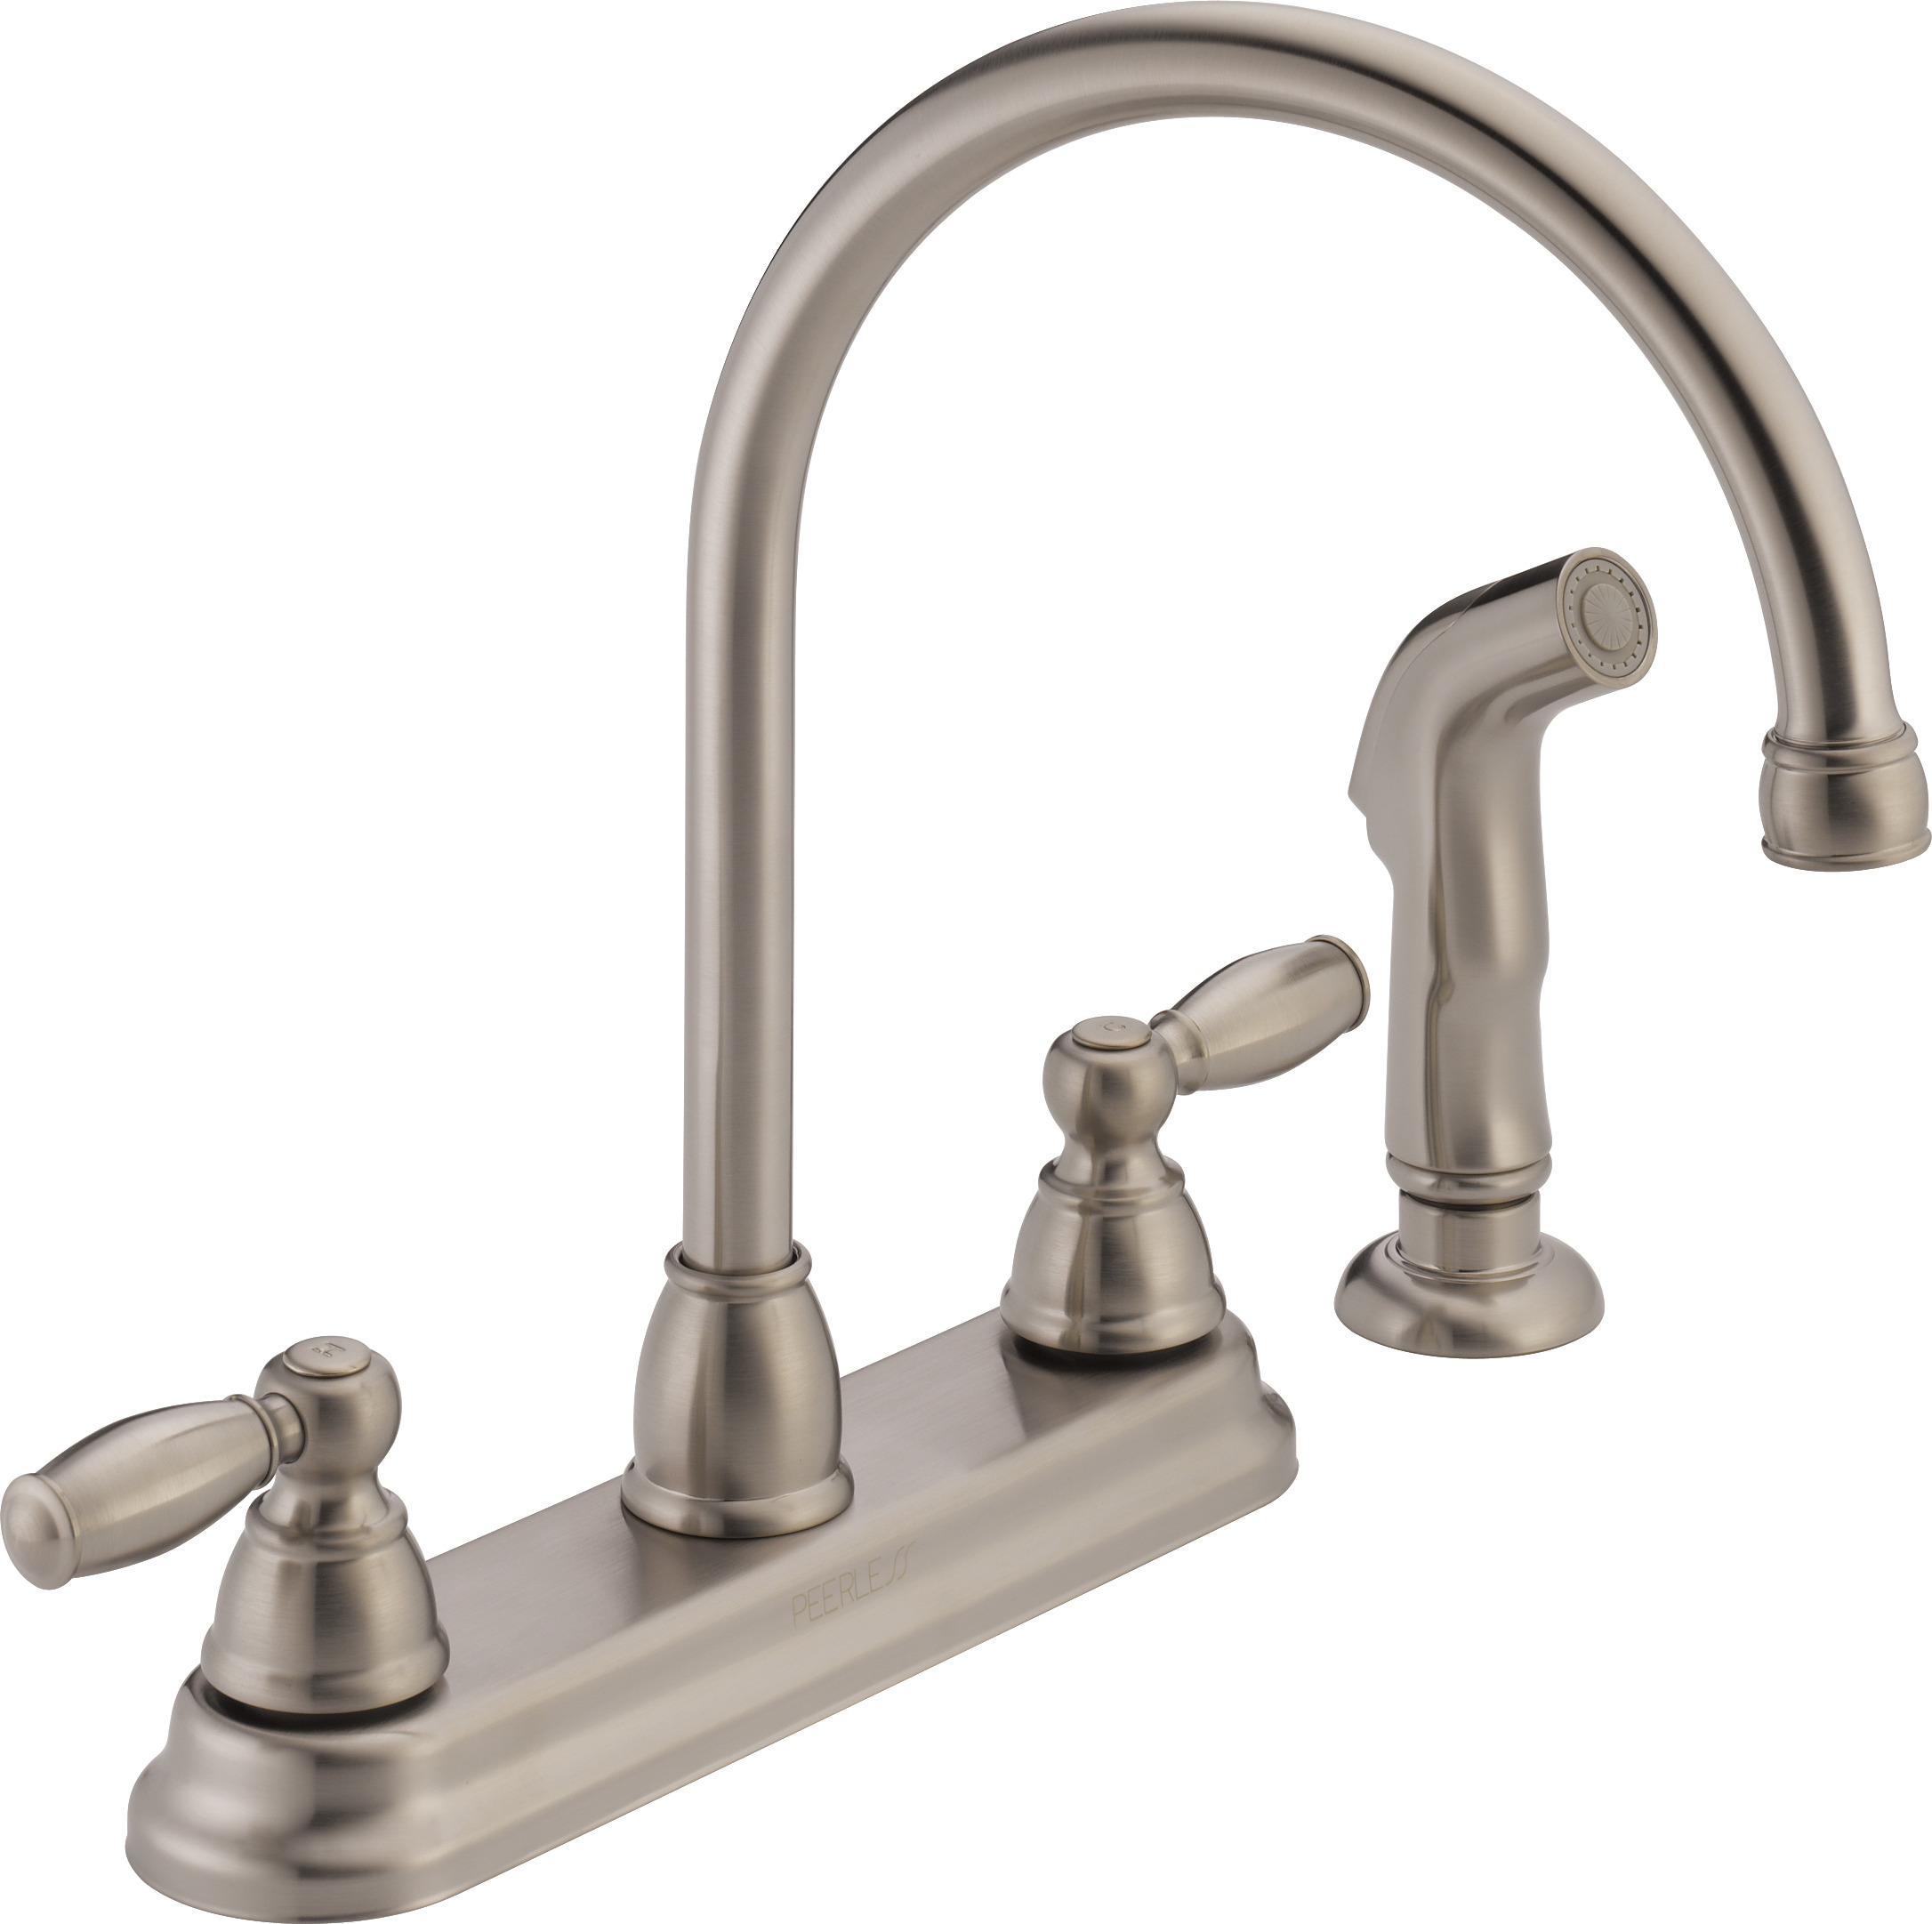 Peerless 2 Handle Kitchen Faucet With Side Spray, Stainless Steel